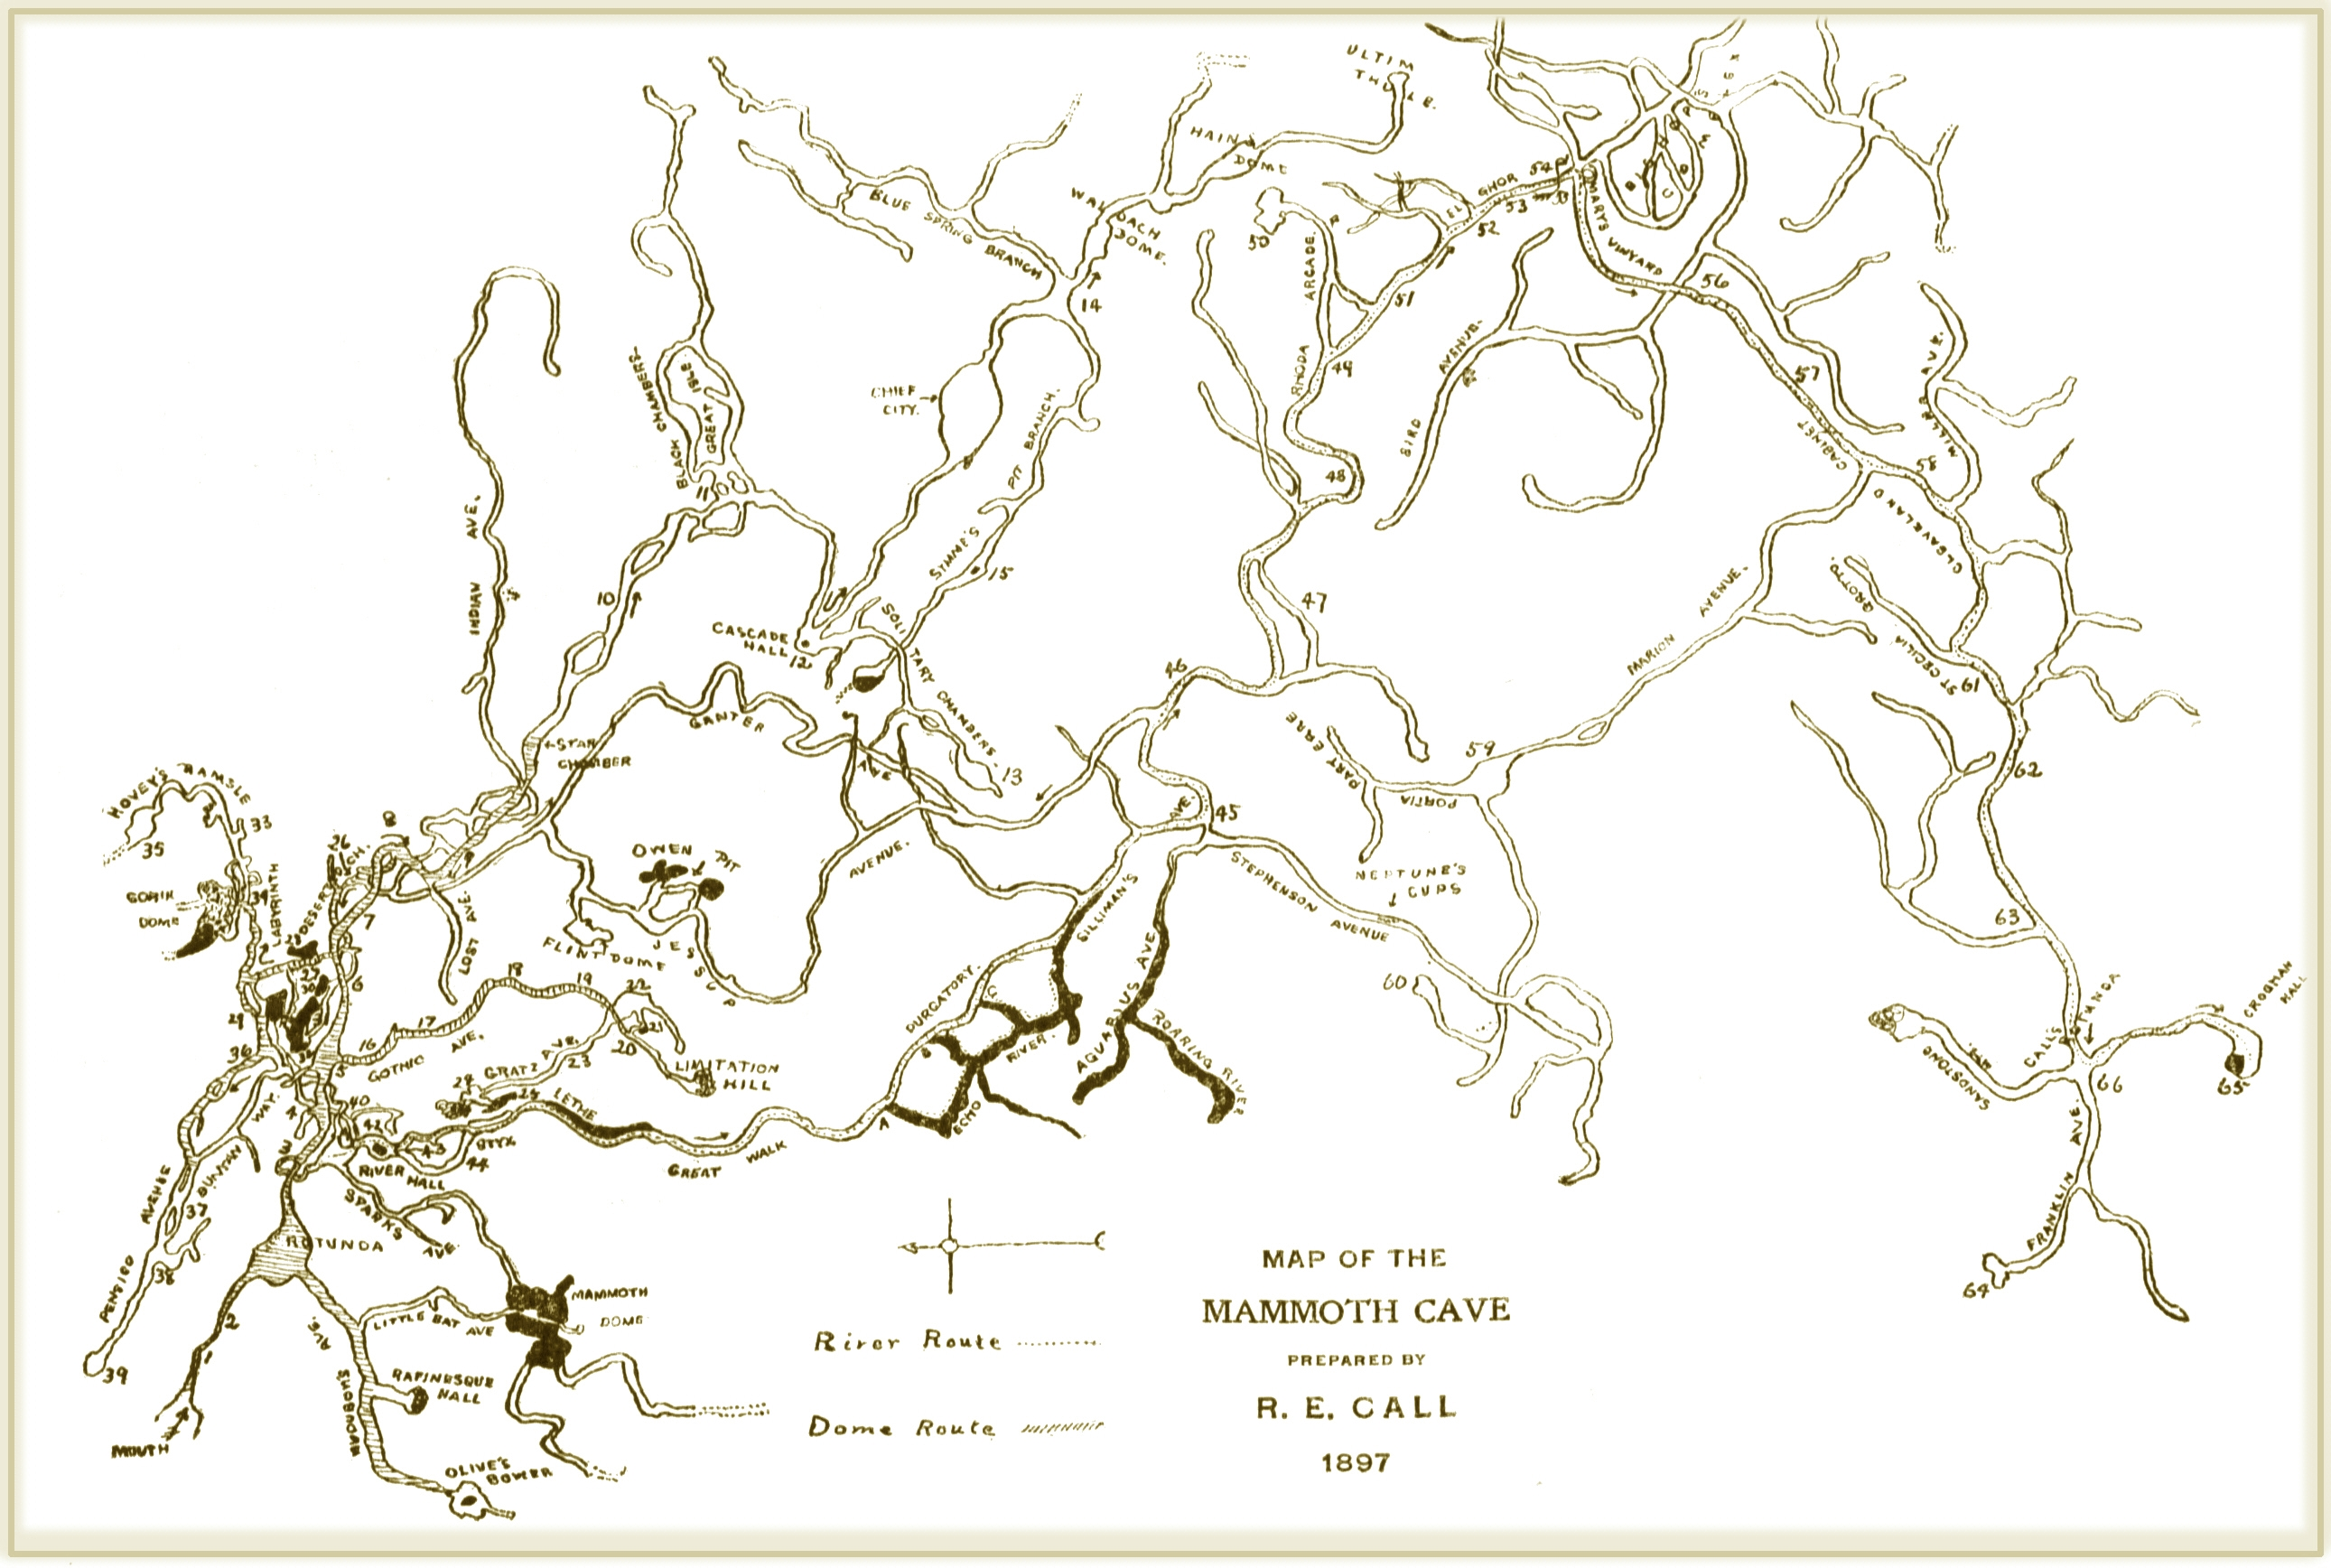 File:R.E.Call (1897) Map of the Mammoth Cave.jpg - Wikimedia ... on red river gorge map, covered bridges in kentucky map, tennessee map, rivers in kentucky map, caves in tennessee, caves minnesota map, caves arizona map, coal mines in kentucky map, caves wisconsin map, cave city ky map, caves alabama map, wineries in kentucky map, arkansas map, mammoth cave map, virginia map, mountains in kentucky map, national parks in kentucky map, spain map,